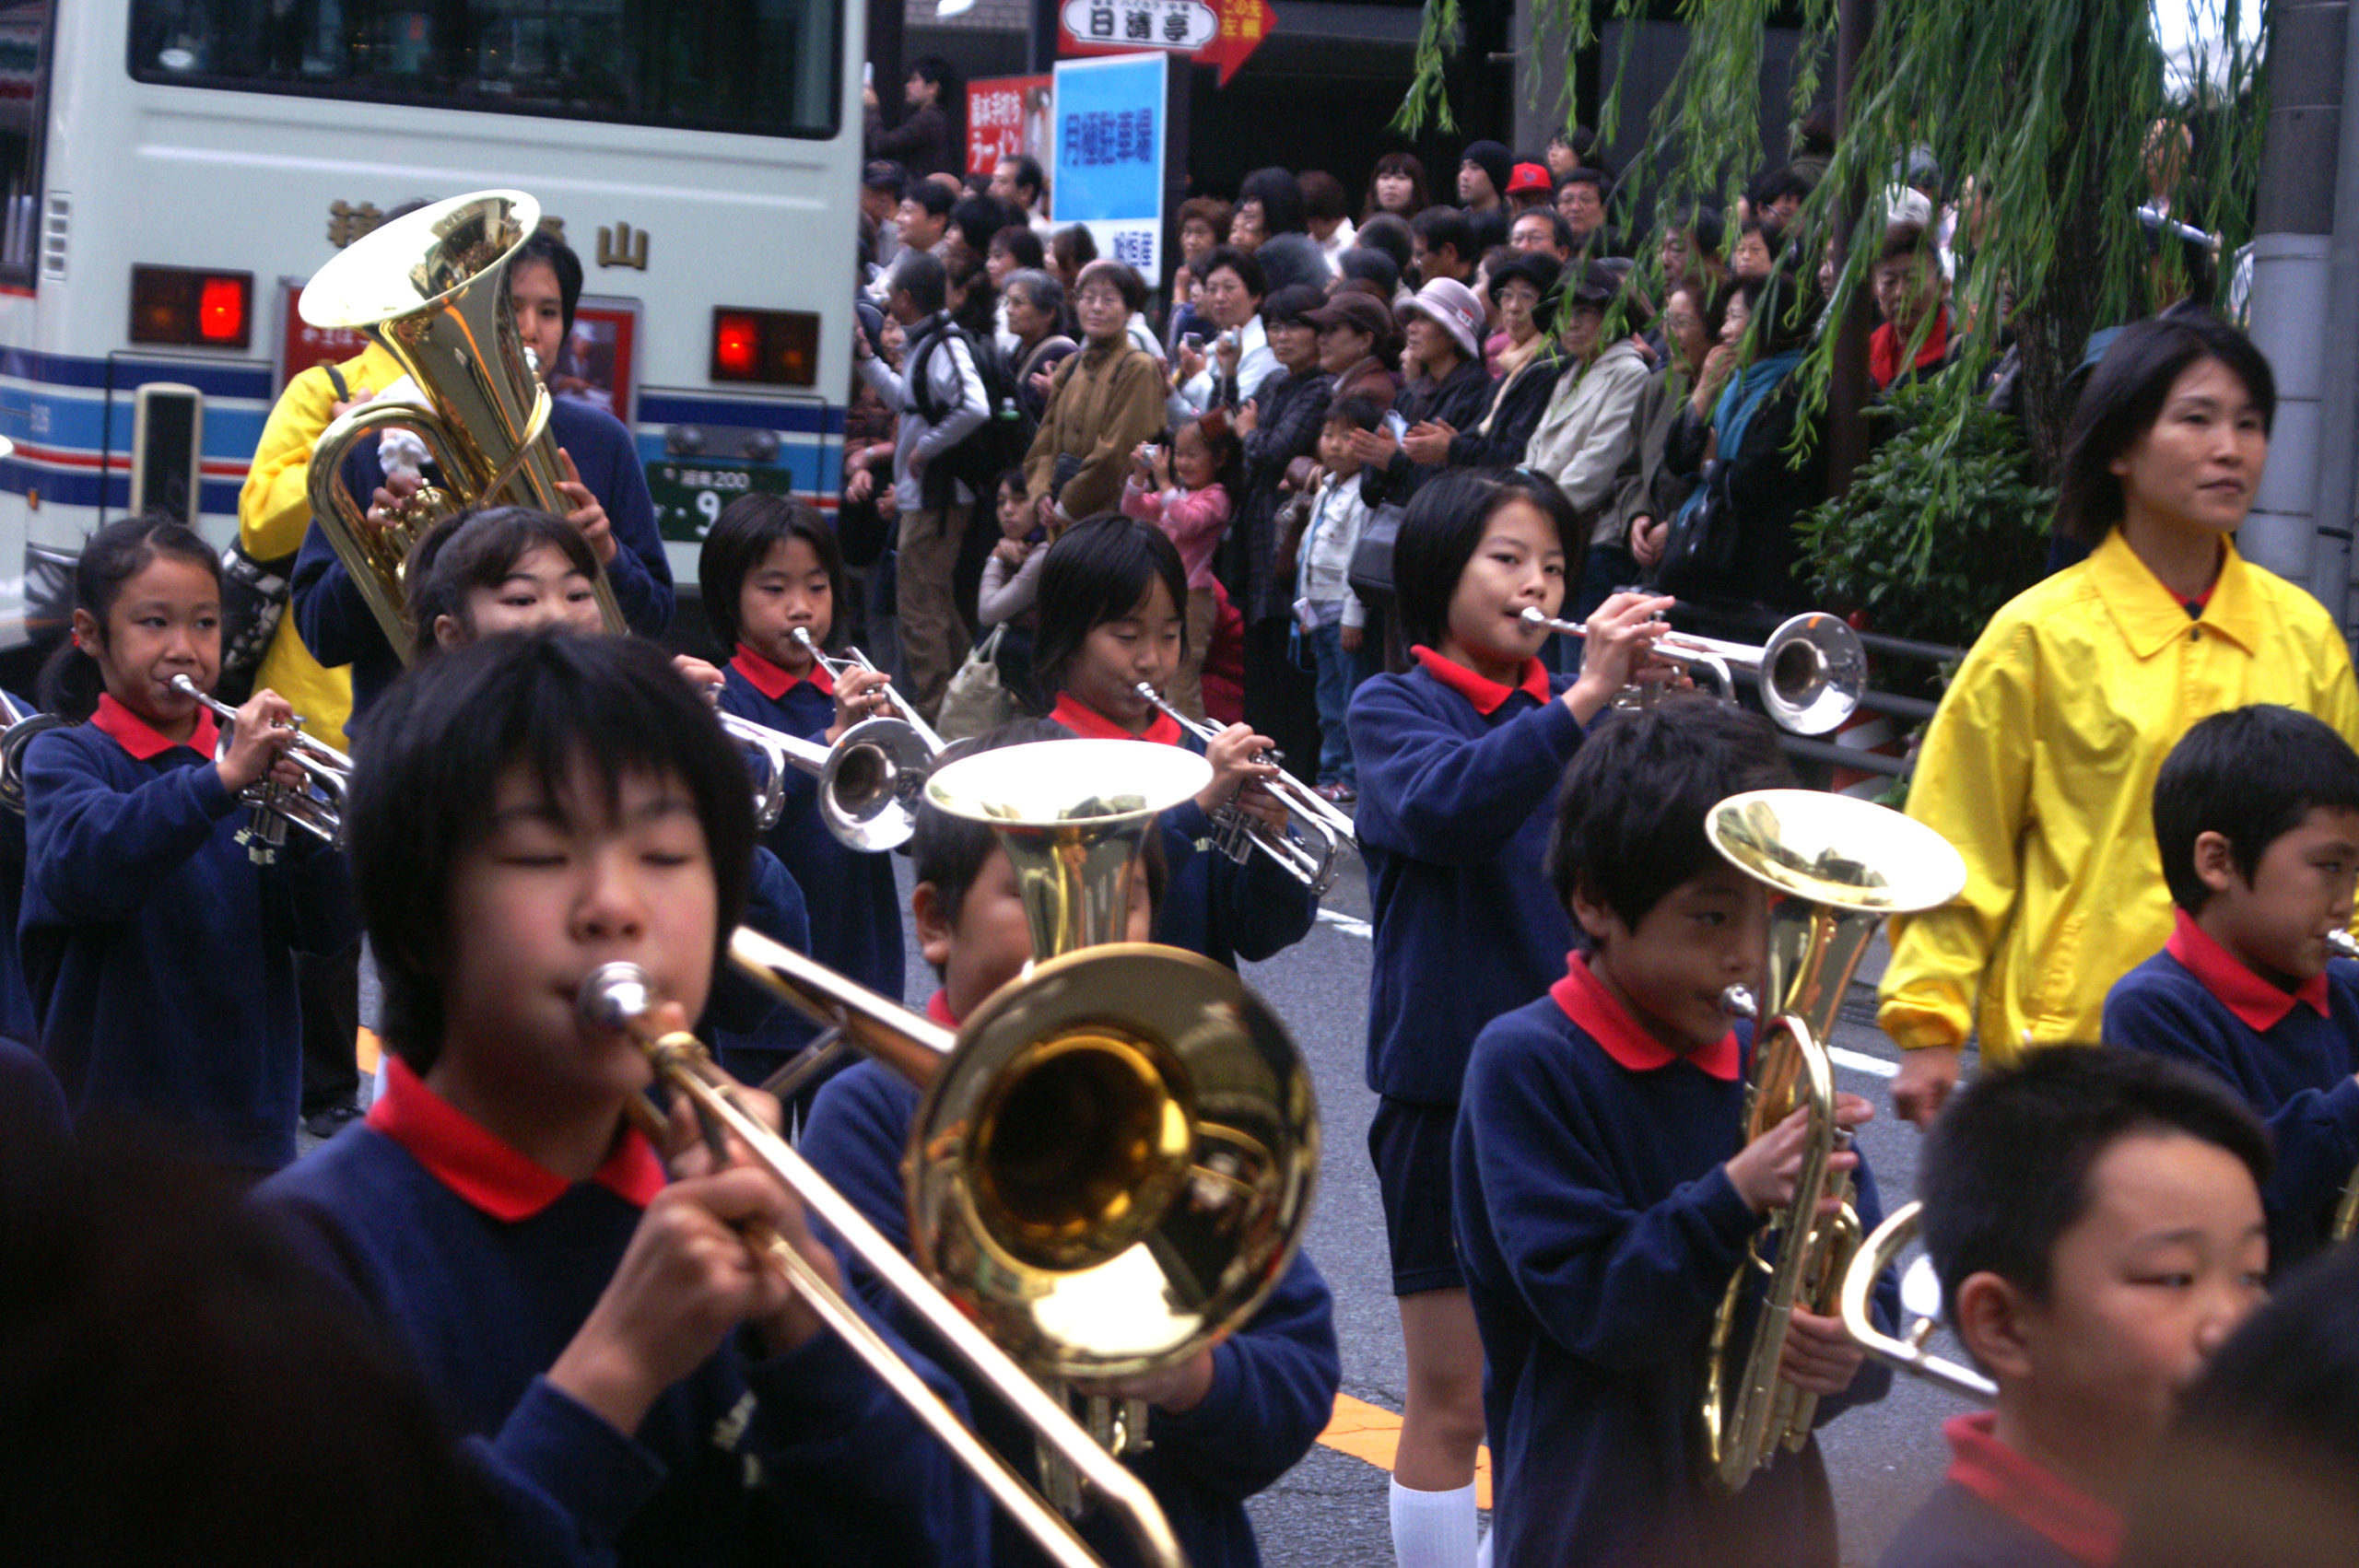 Youth brass band